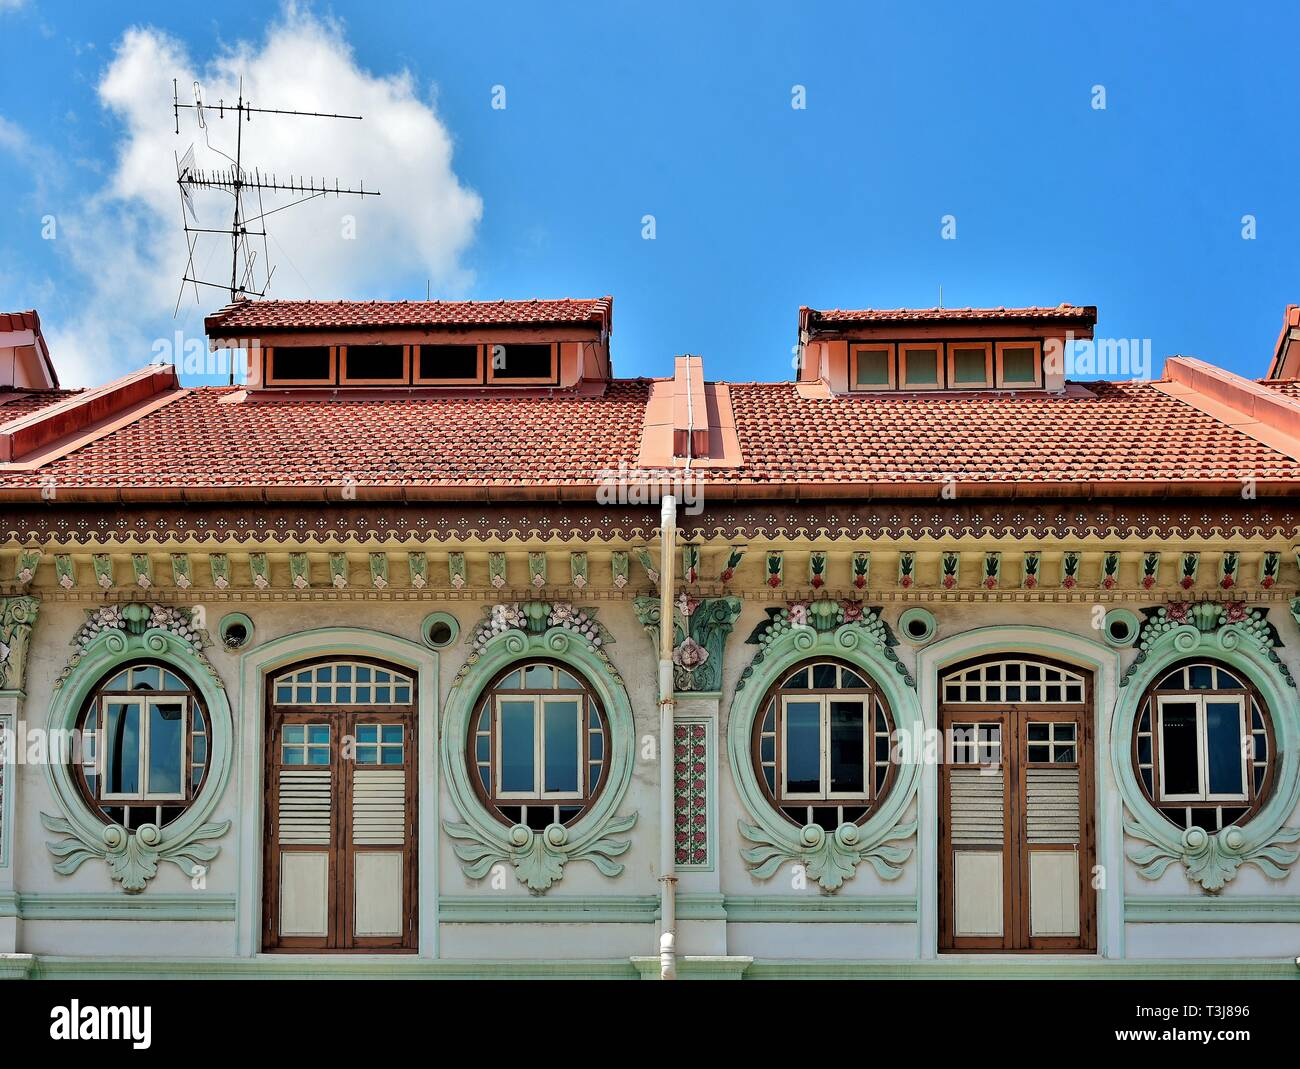 Front view of traditional Peranakan or Straits Chinese Singapore shop house exterior with unique oval windows  in historic Little India Stock Photo